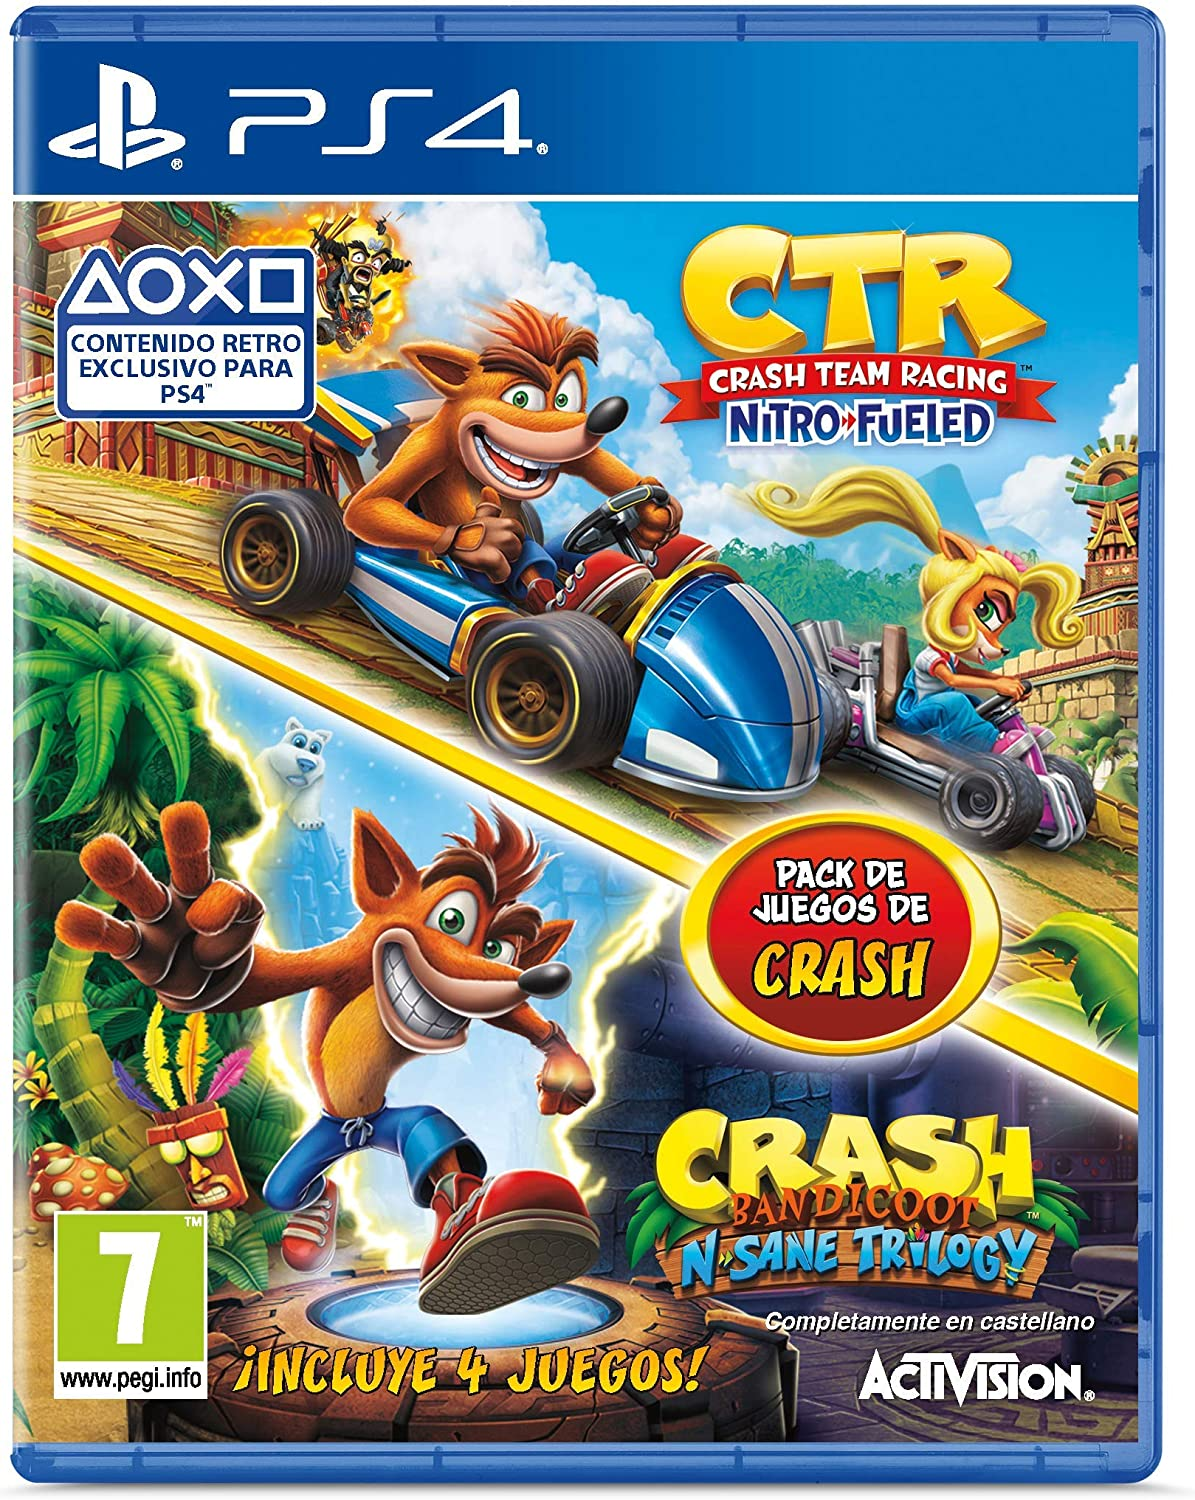 Crash Team Racing Nitro Fueled + Crash N. Sane Trilogy bundle ...